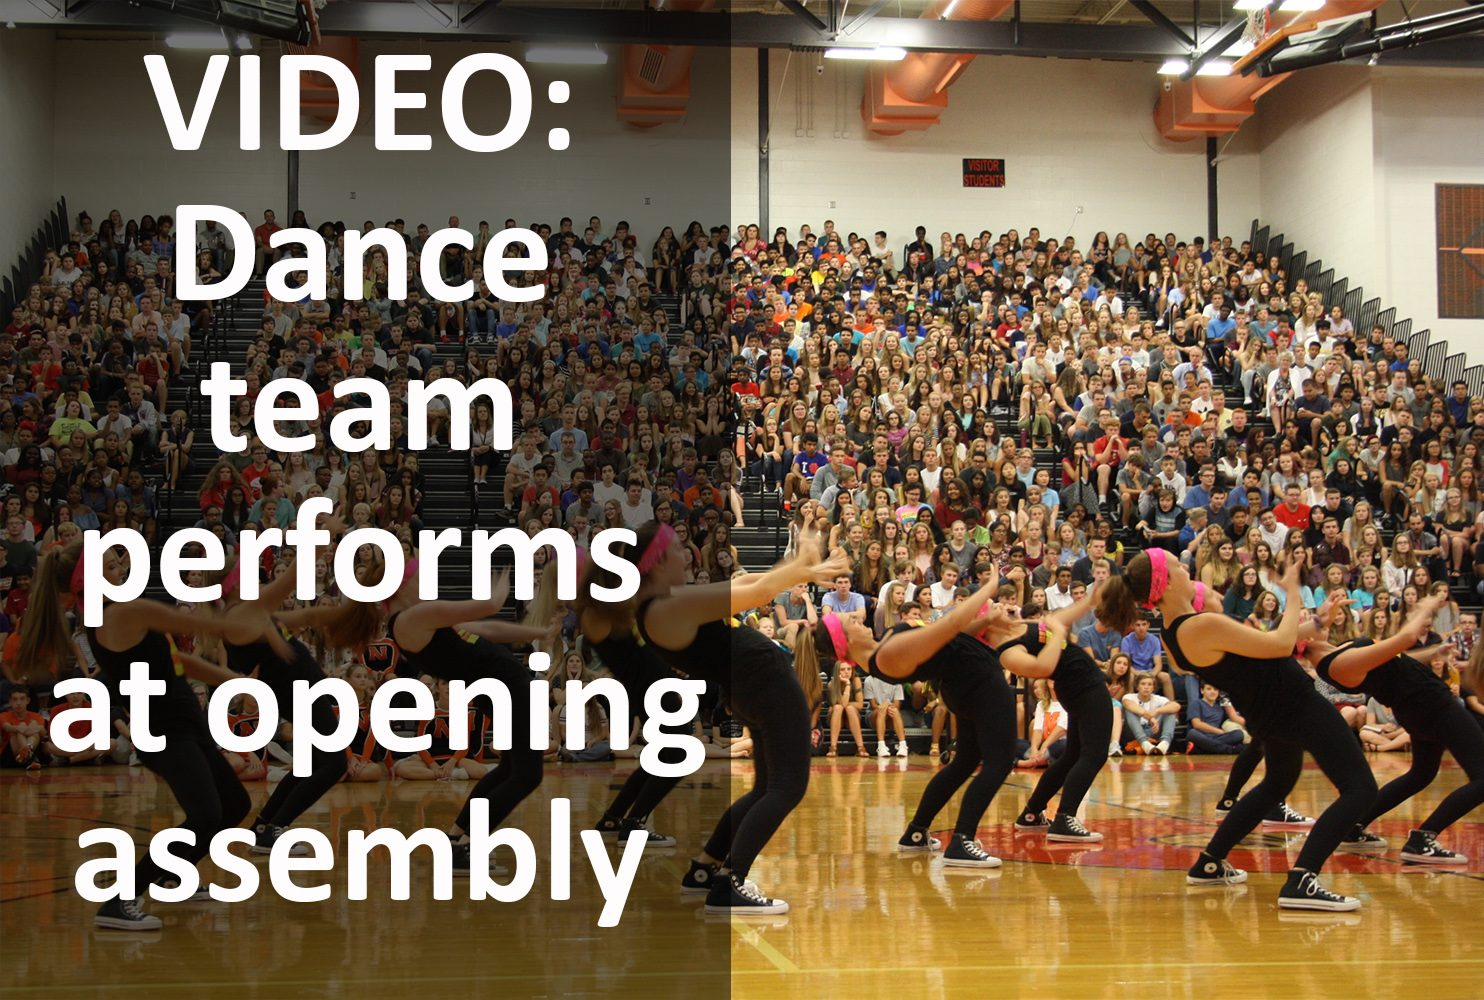 Dance team performs during opening day assembly